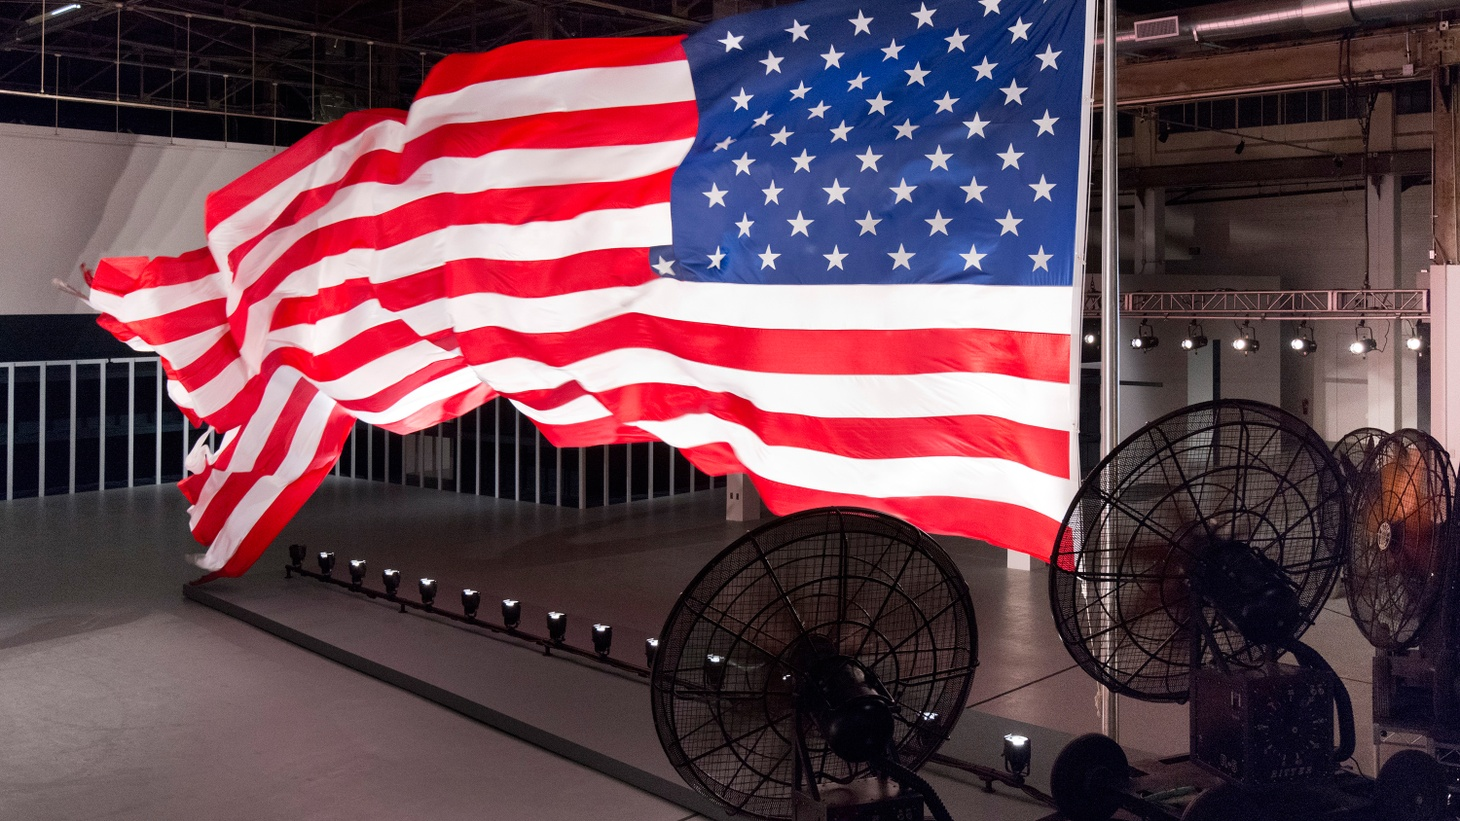 Hunter Drohojowska-Philp thrills to the power of the big flag on view in Trinket.